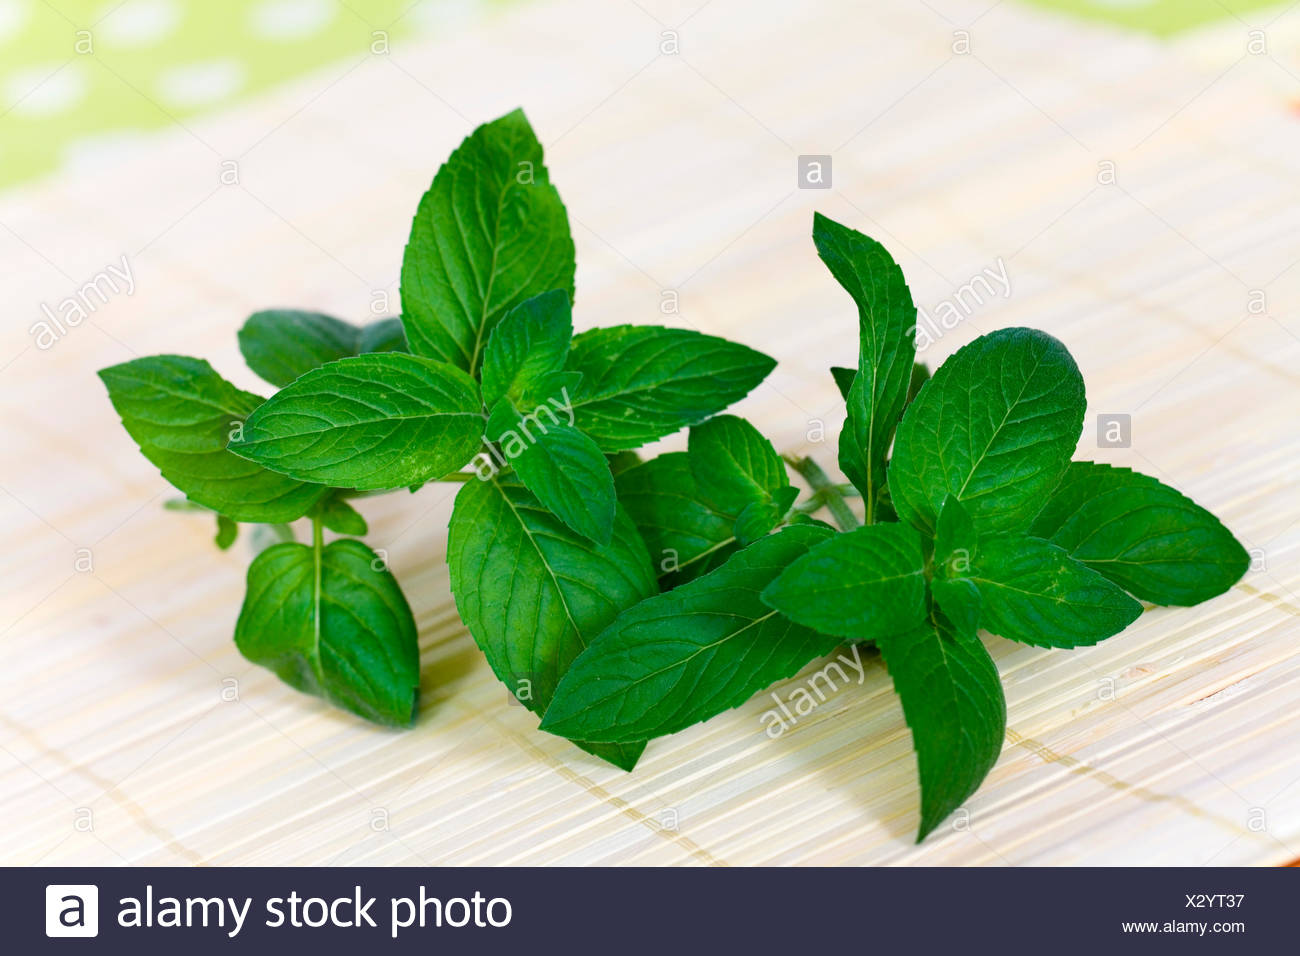 tpeppermint - Stock Image